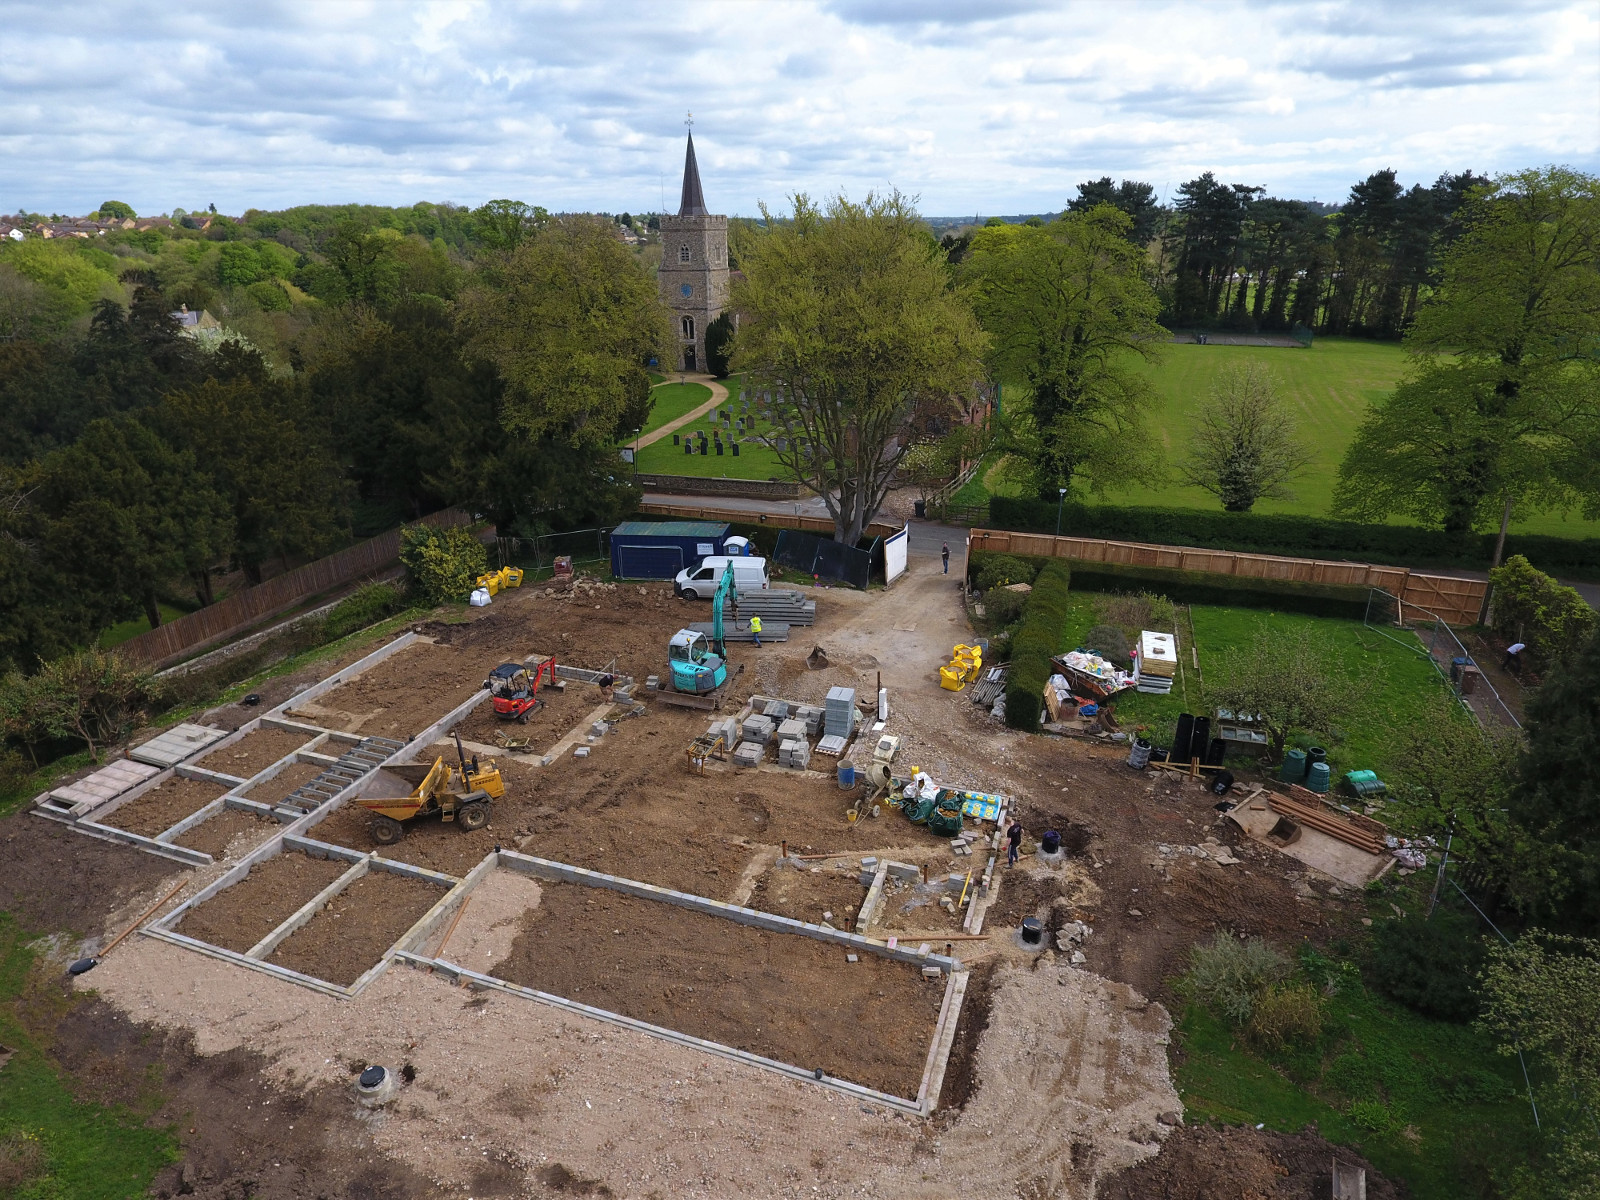 Drone photo of a building site at ground level, with a church spire between the trees in the background